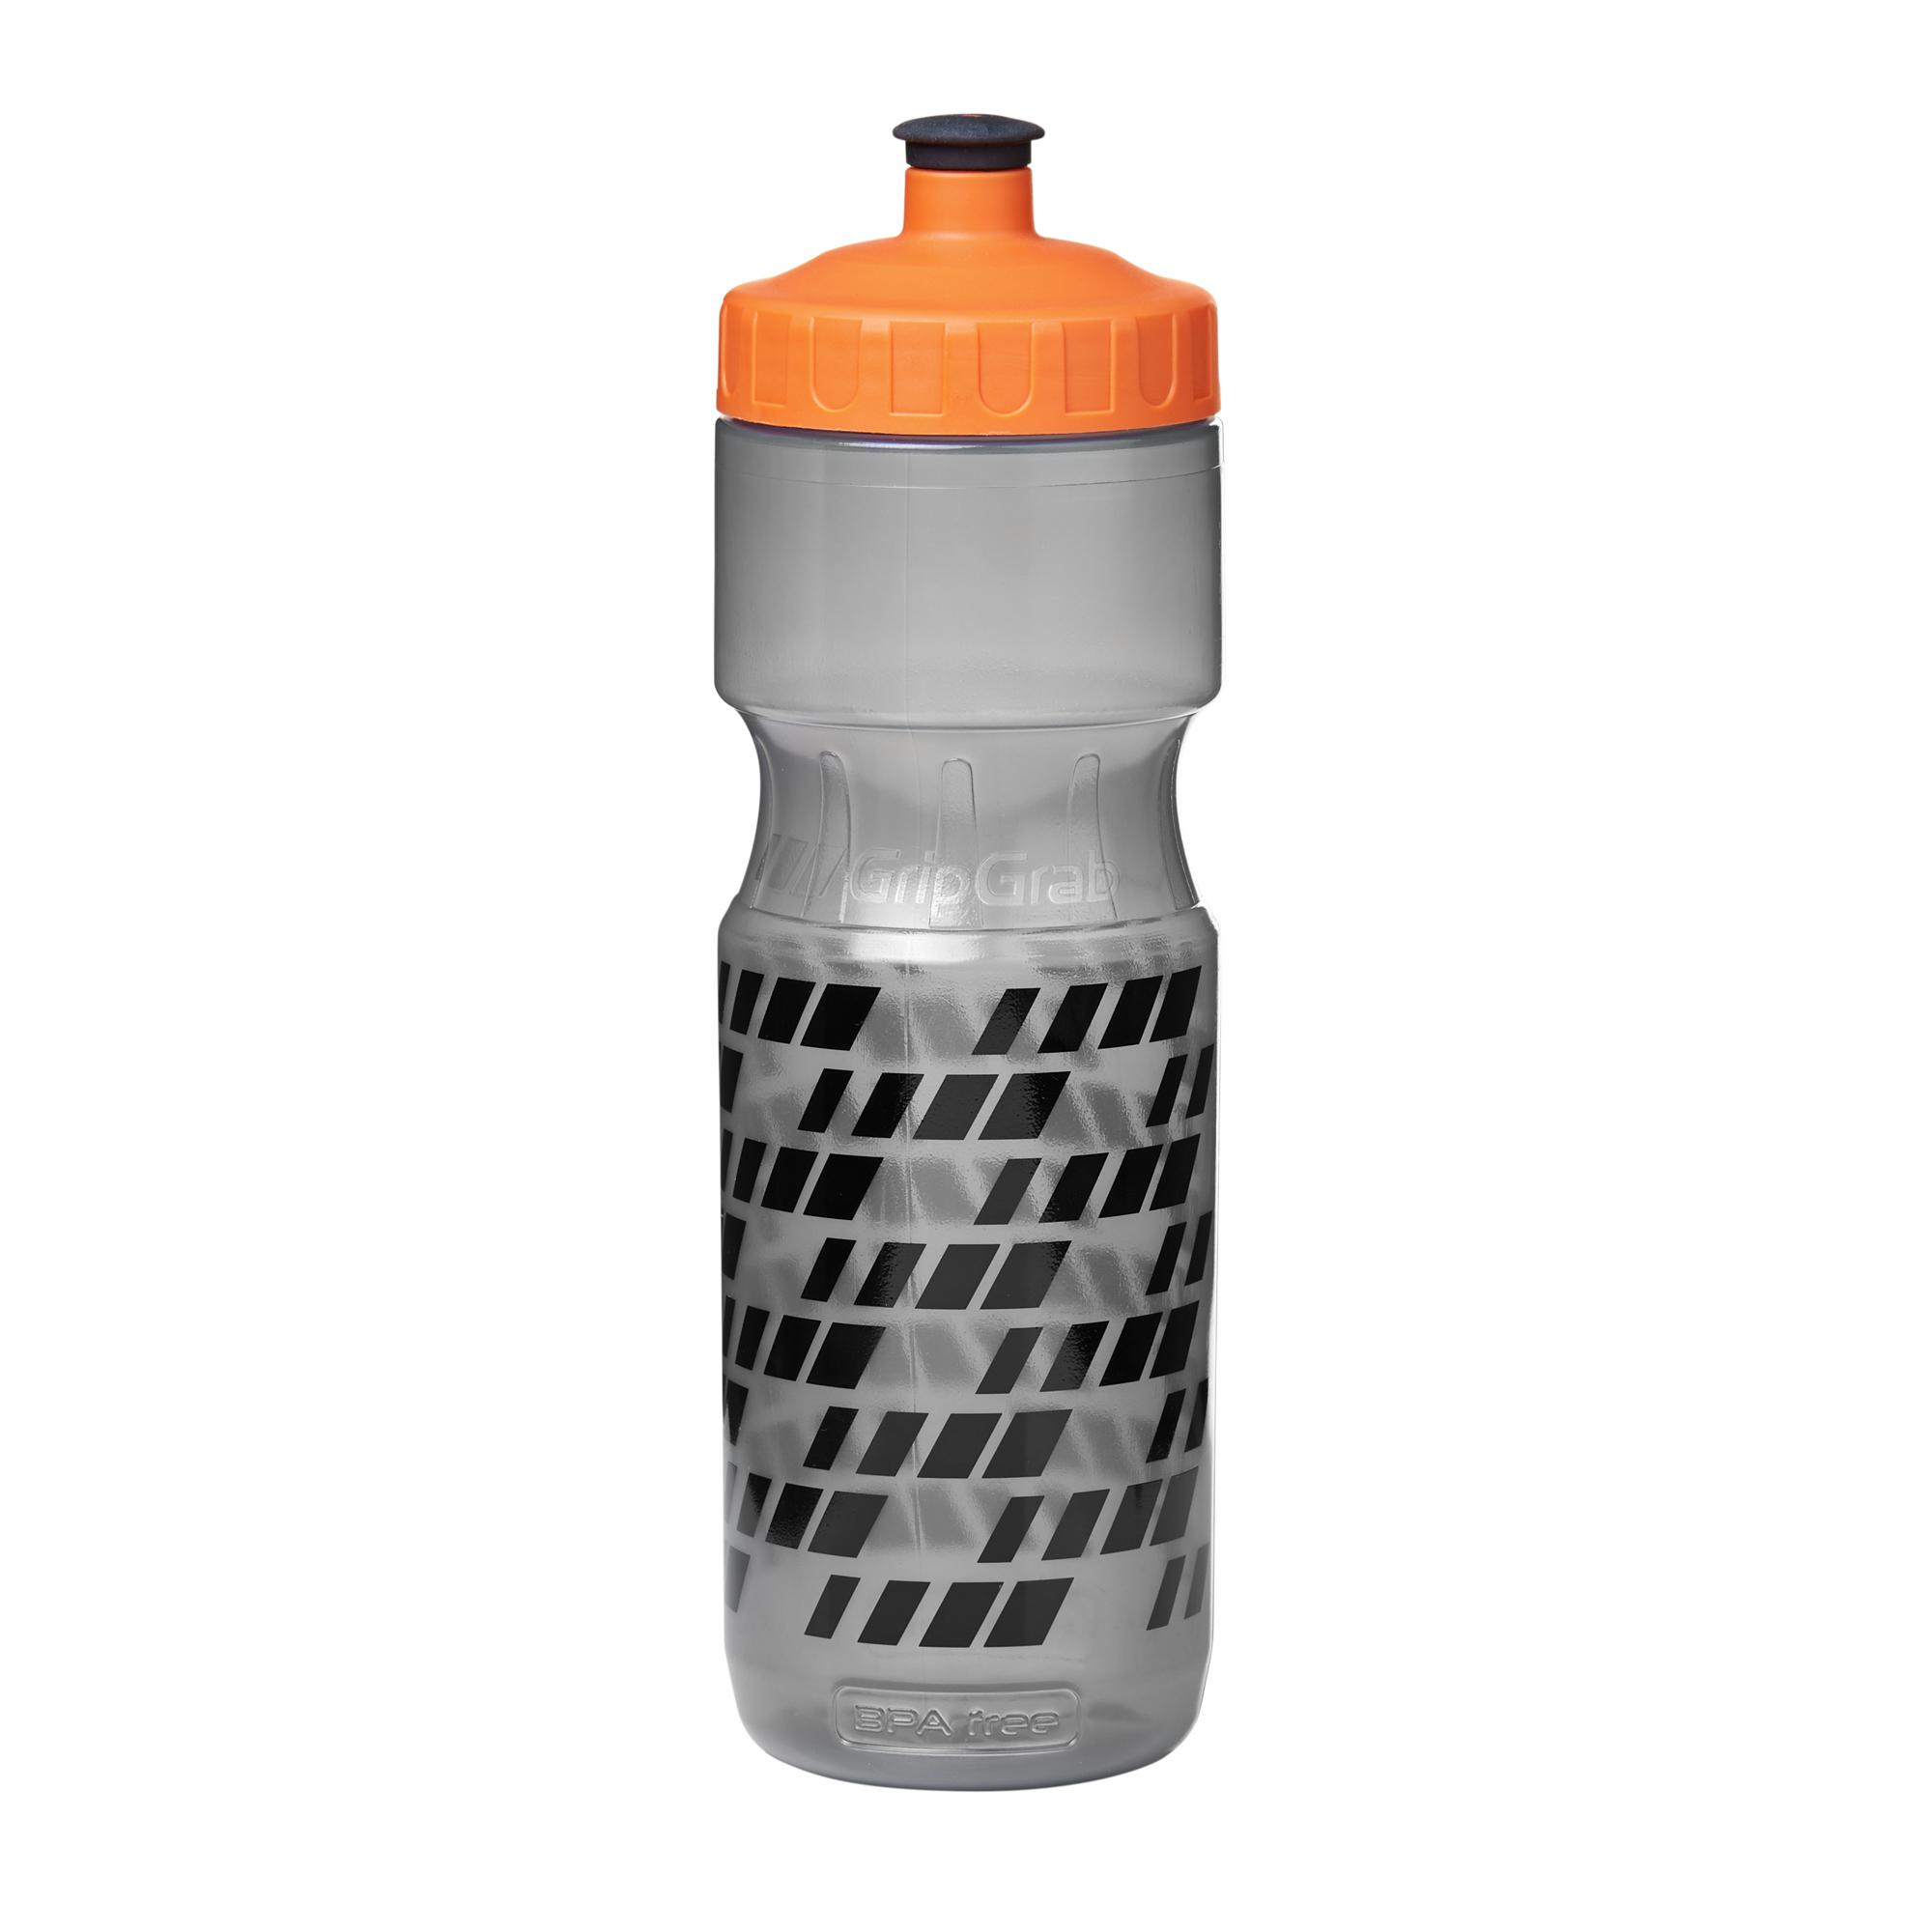 Afbeelding GripGrab Bidon Oranje / 2018 Drinking Bottle Large 800 ml